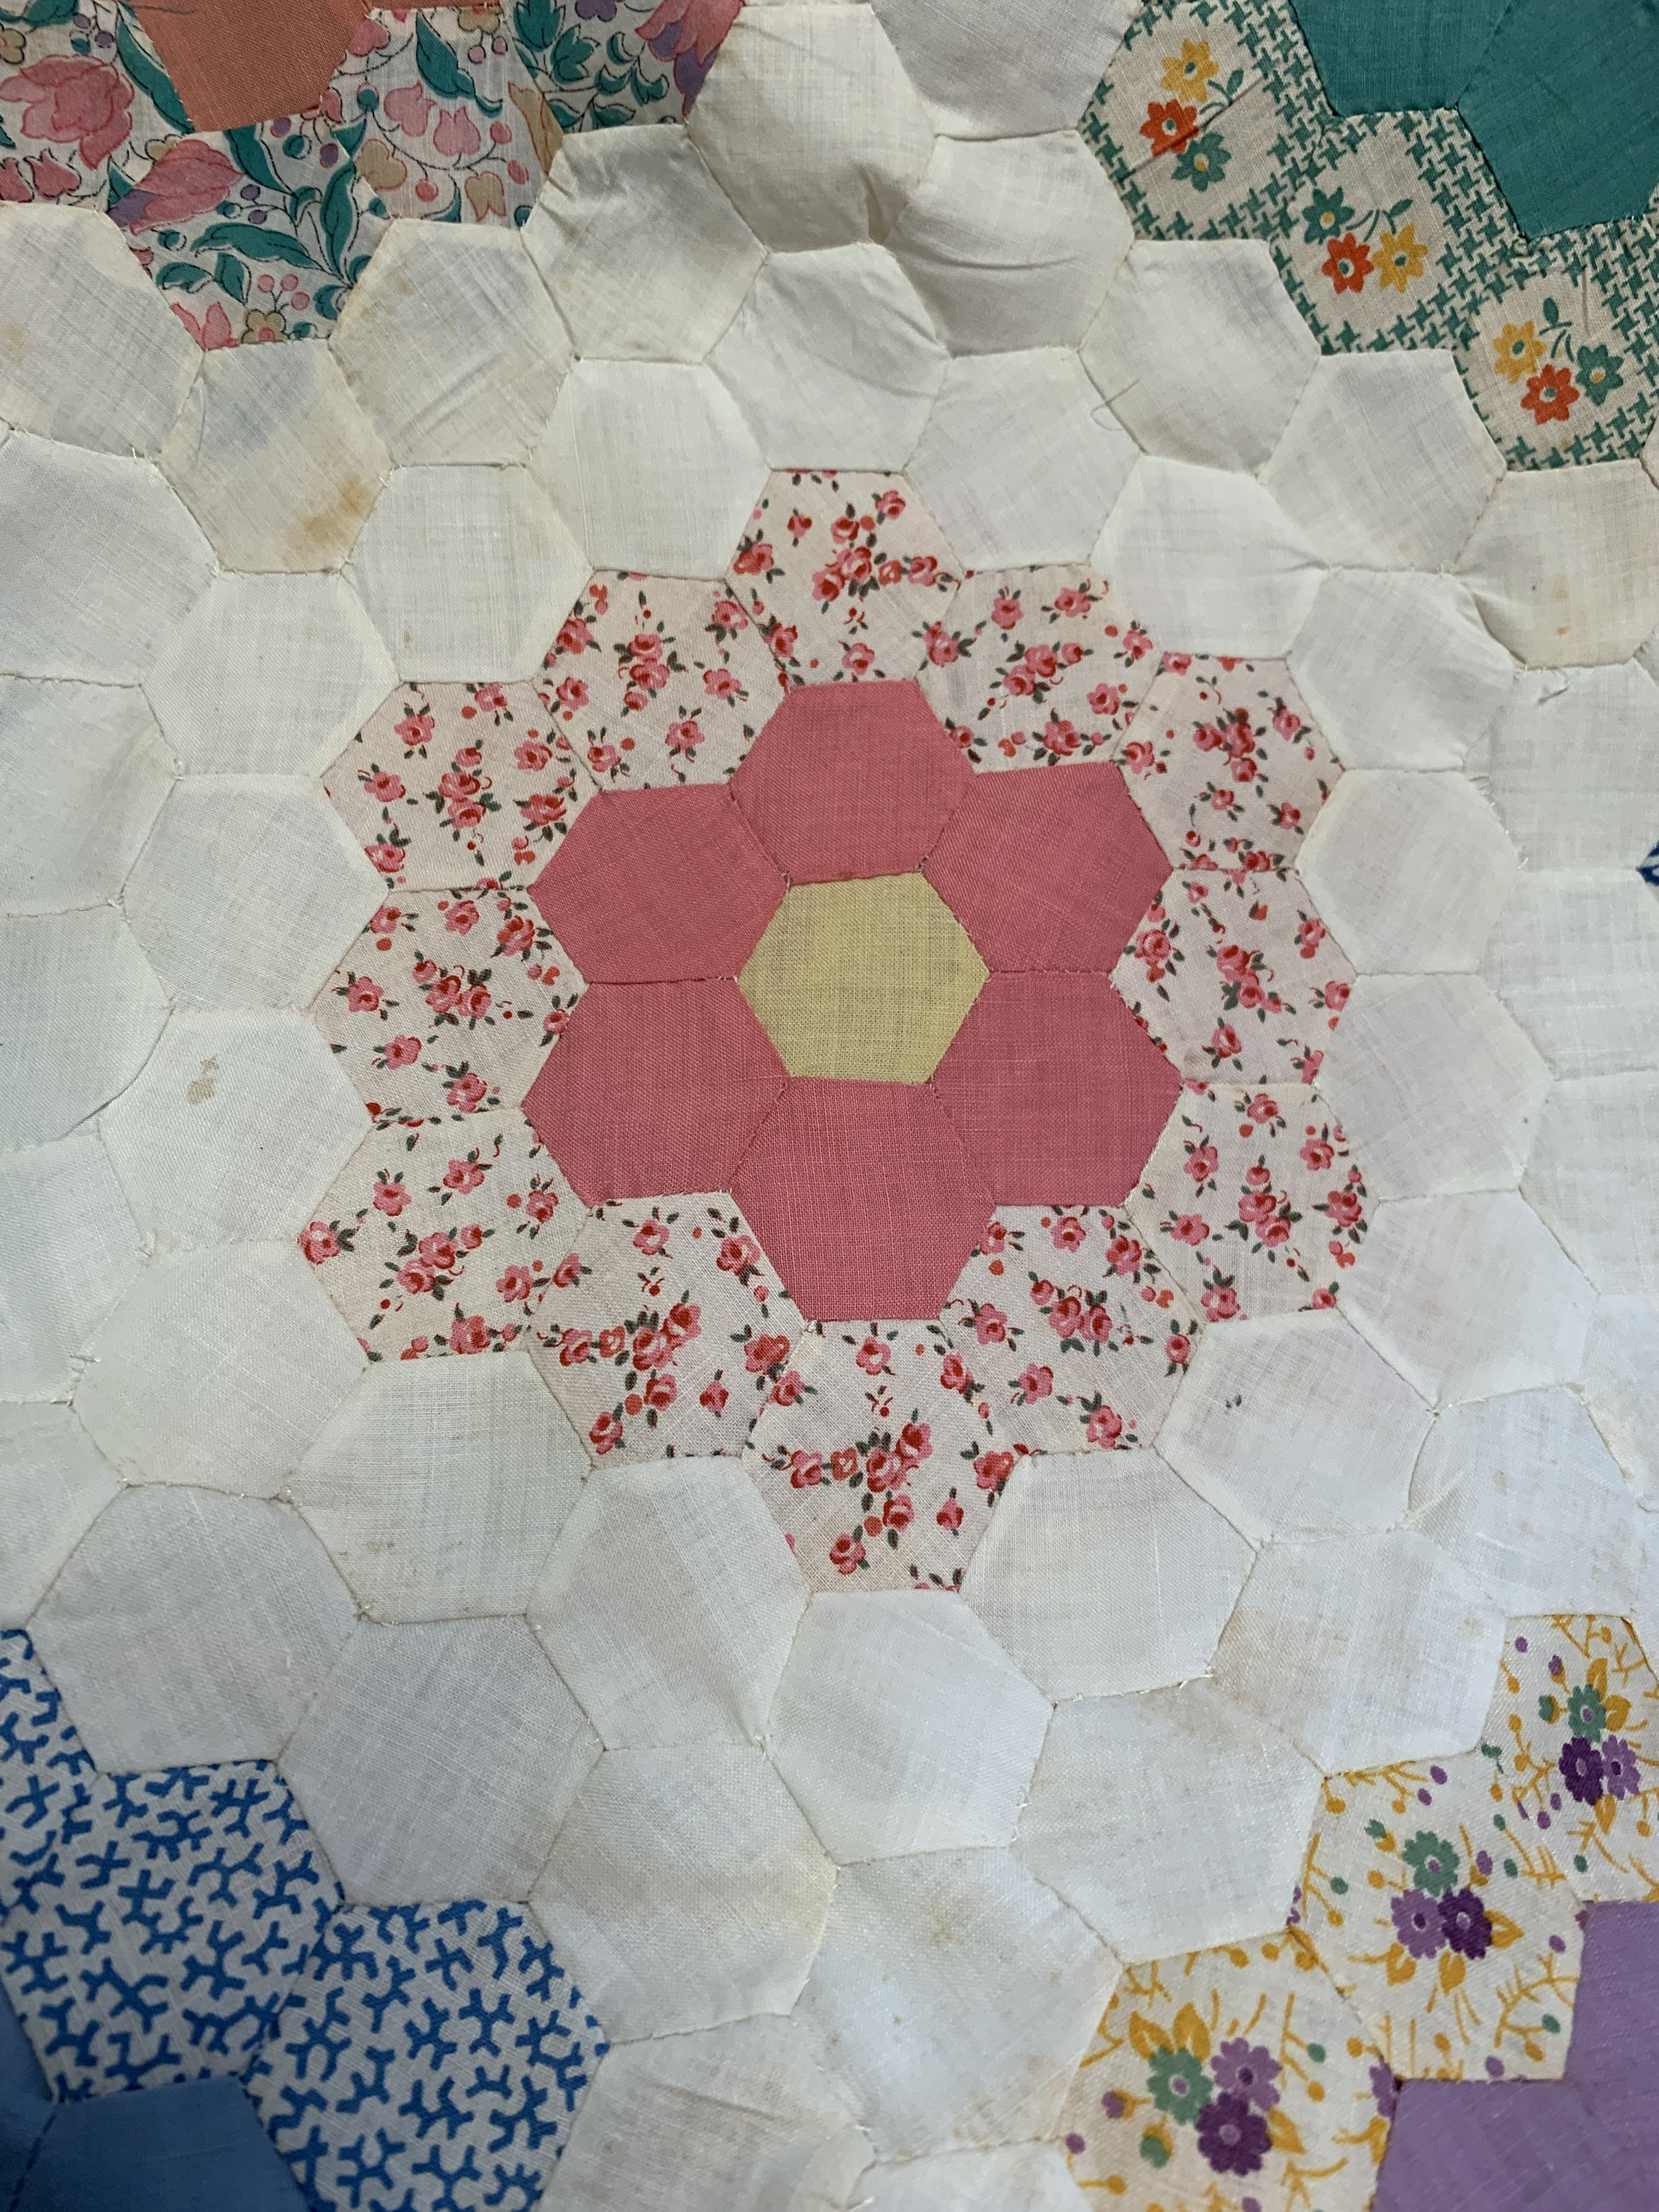 Sew hexagons together with Y-seams